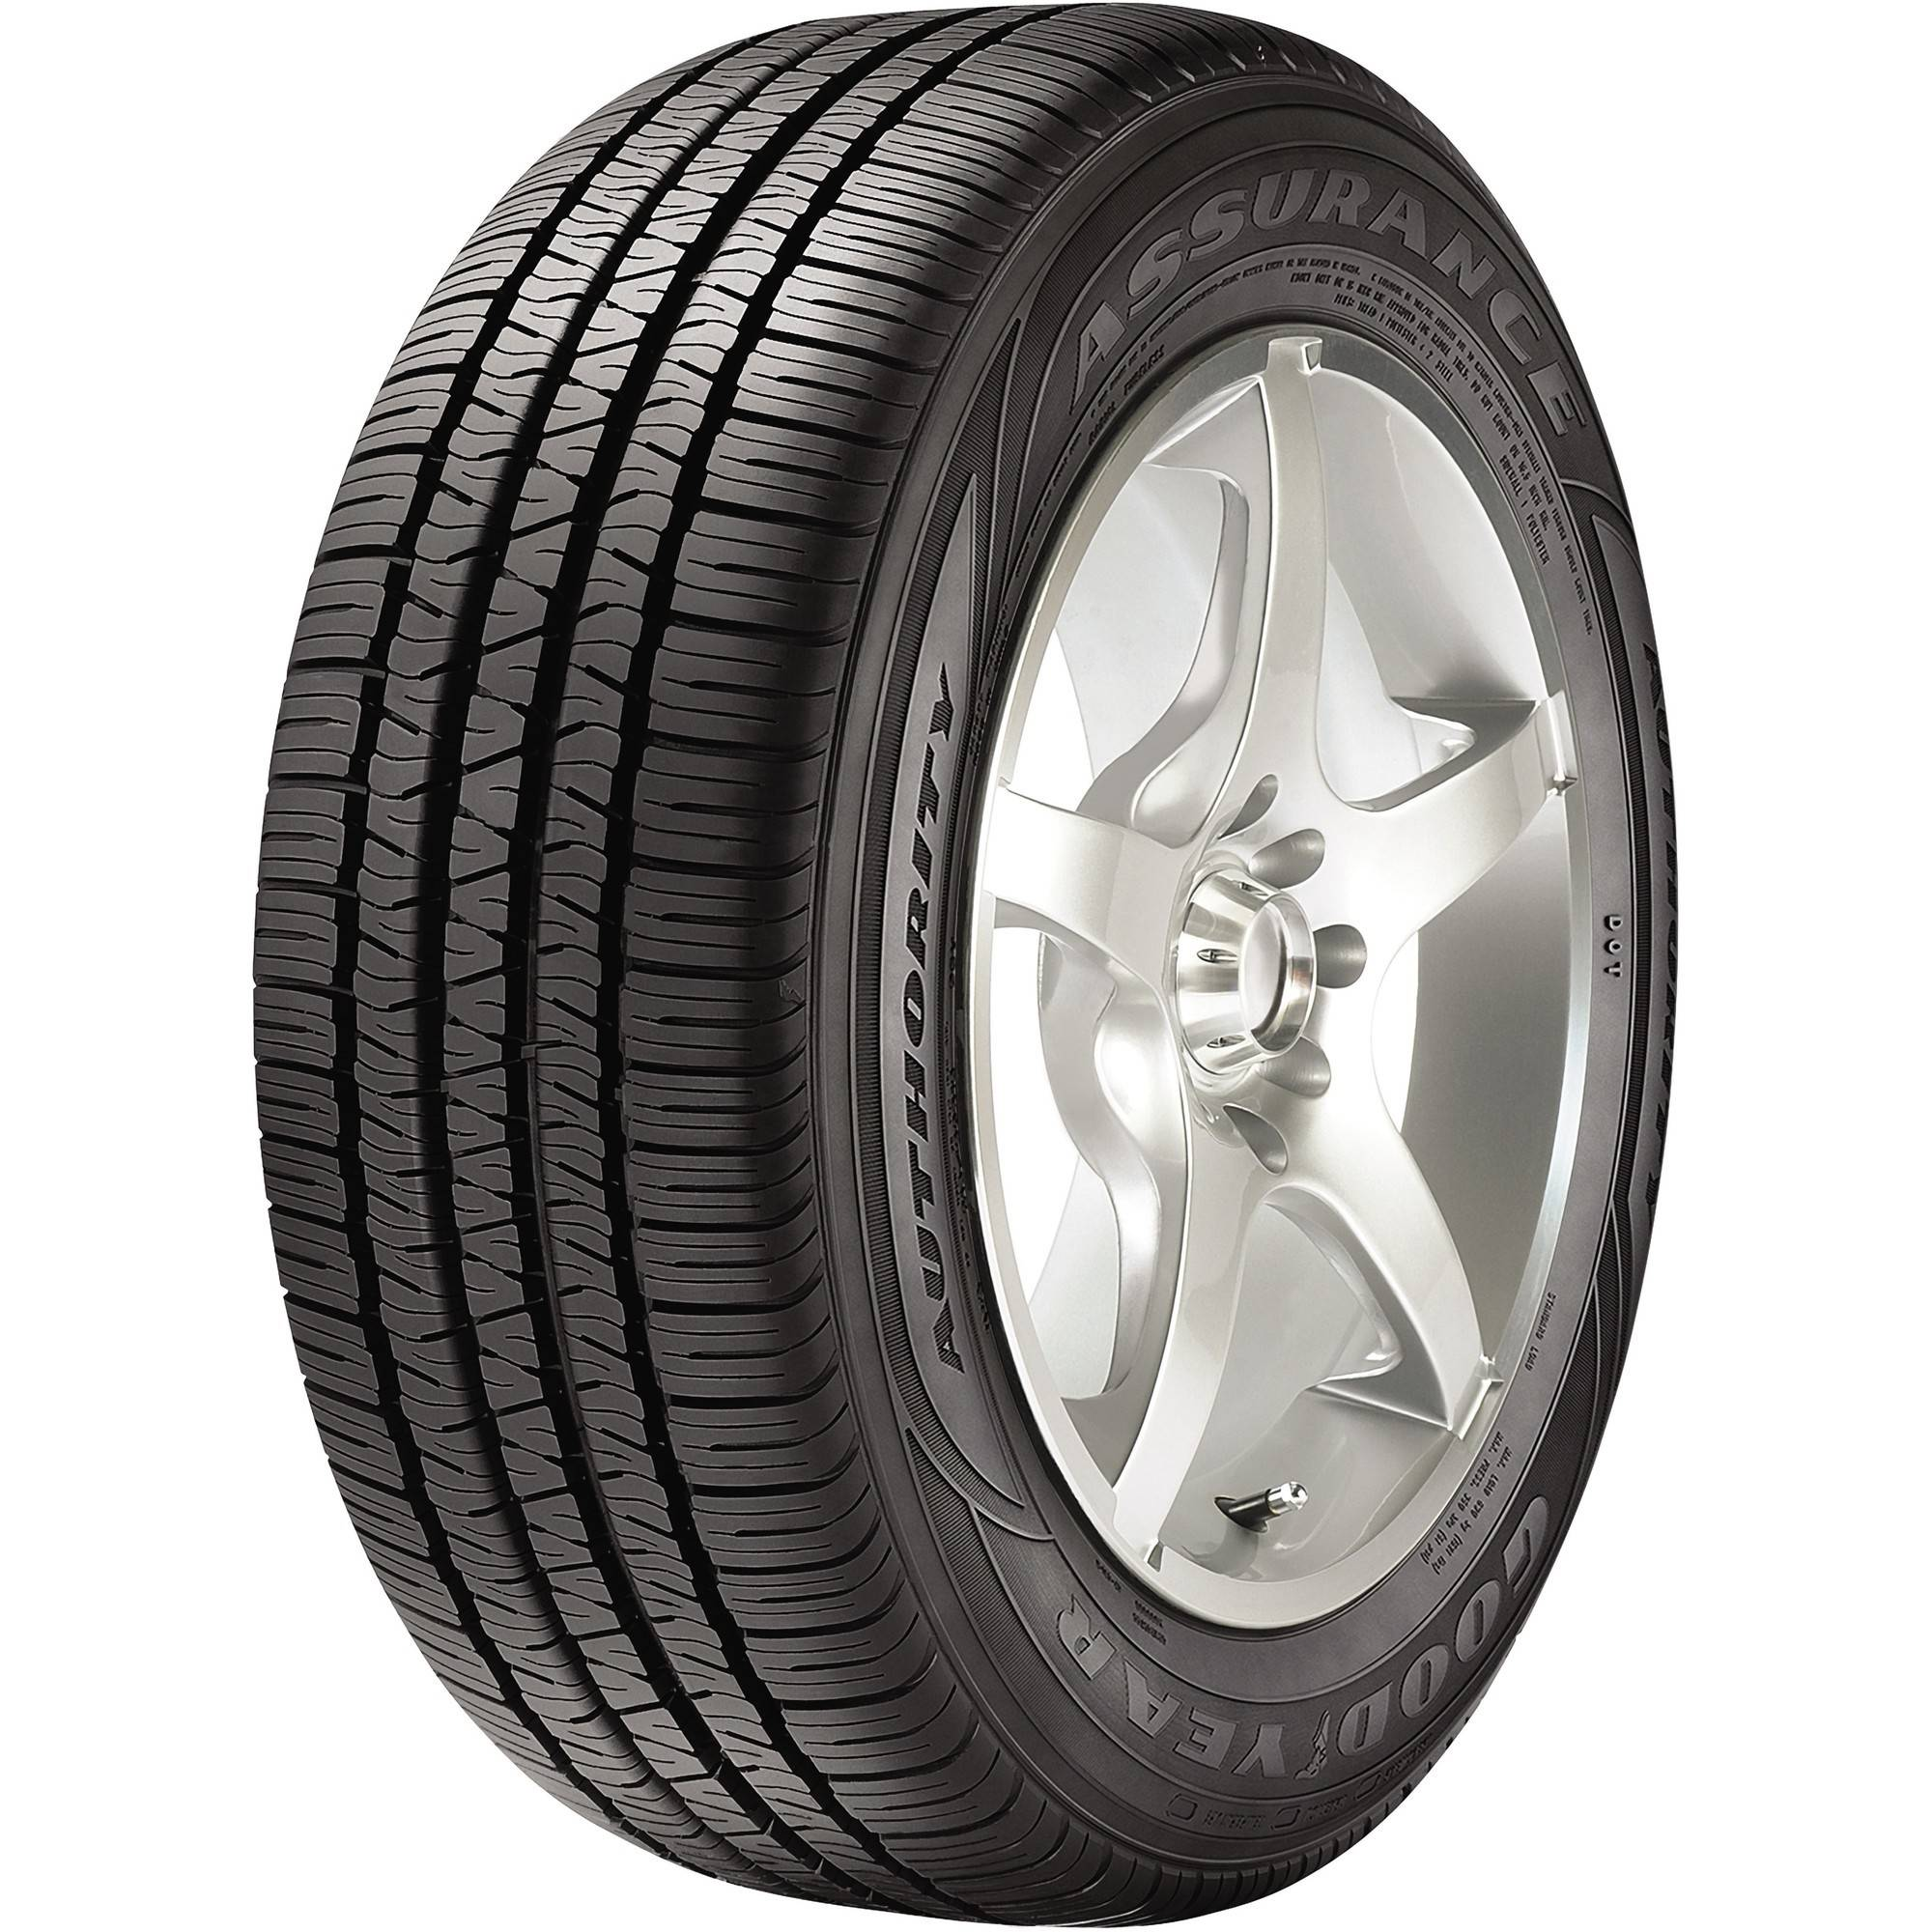 Goodyear Assurance Authority Tire 225/50R17  94V